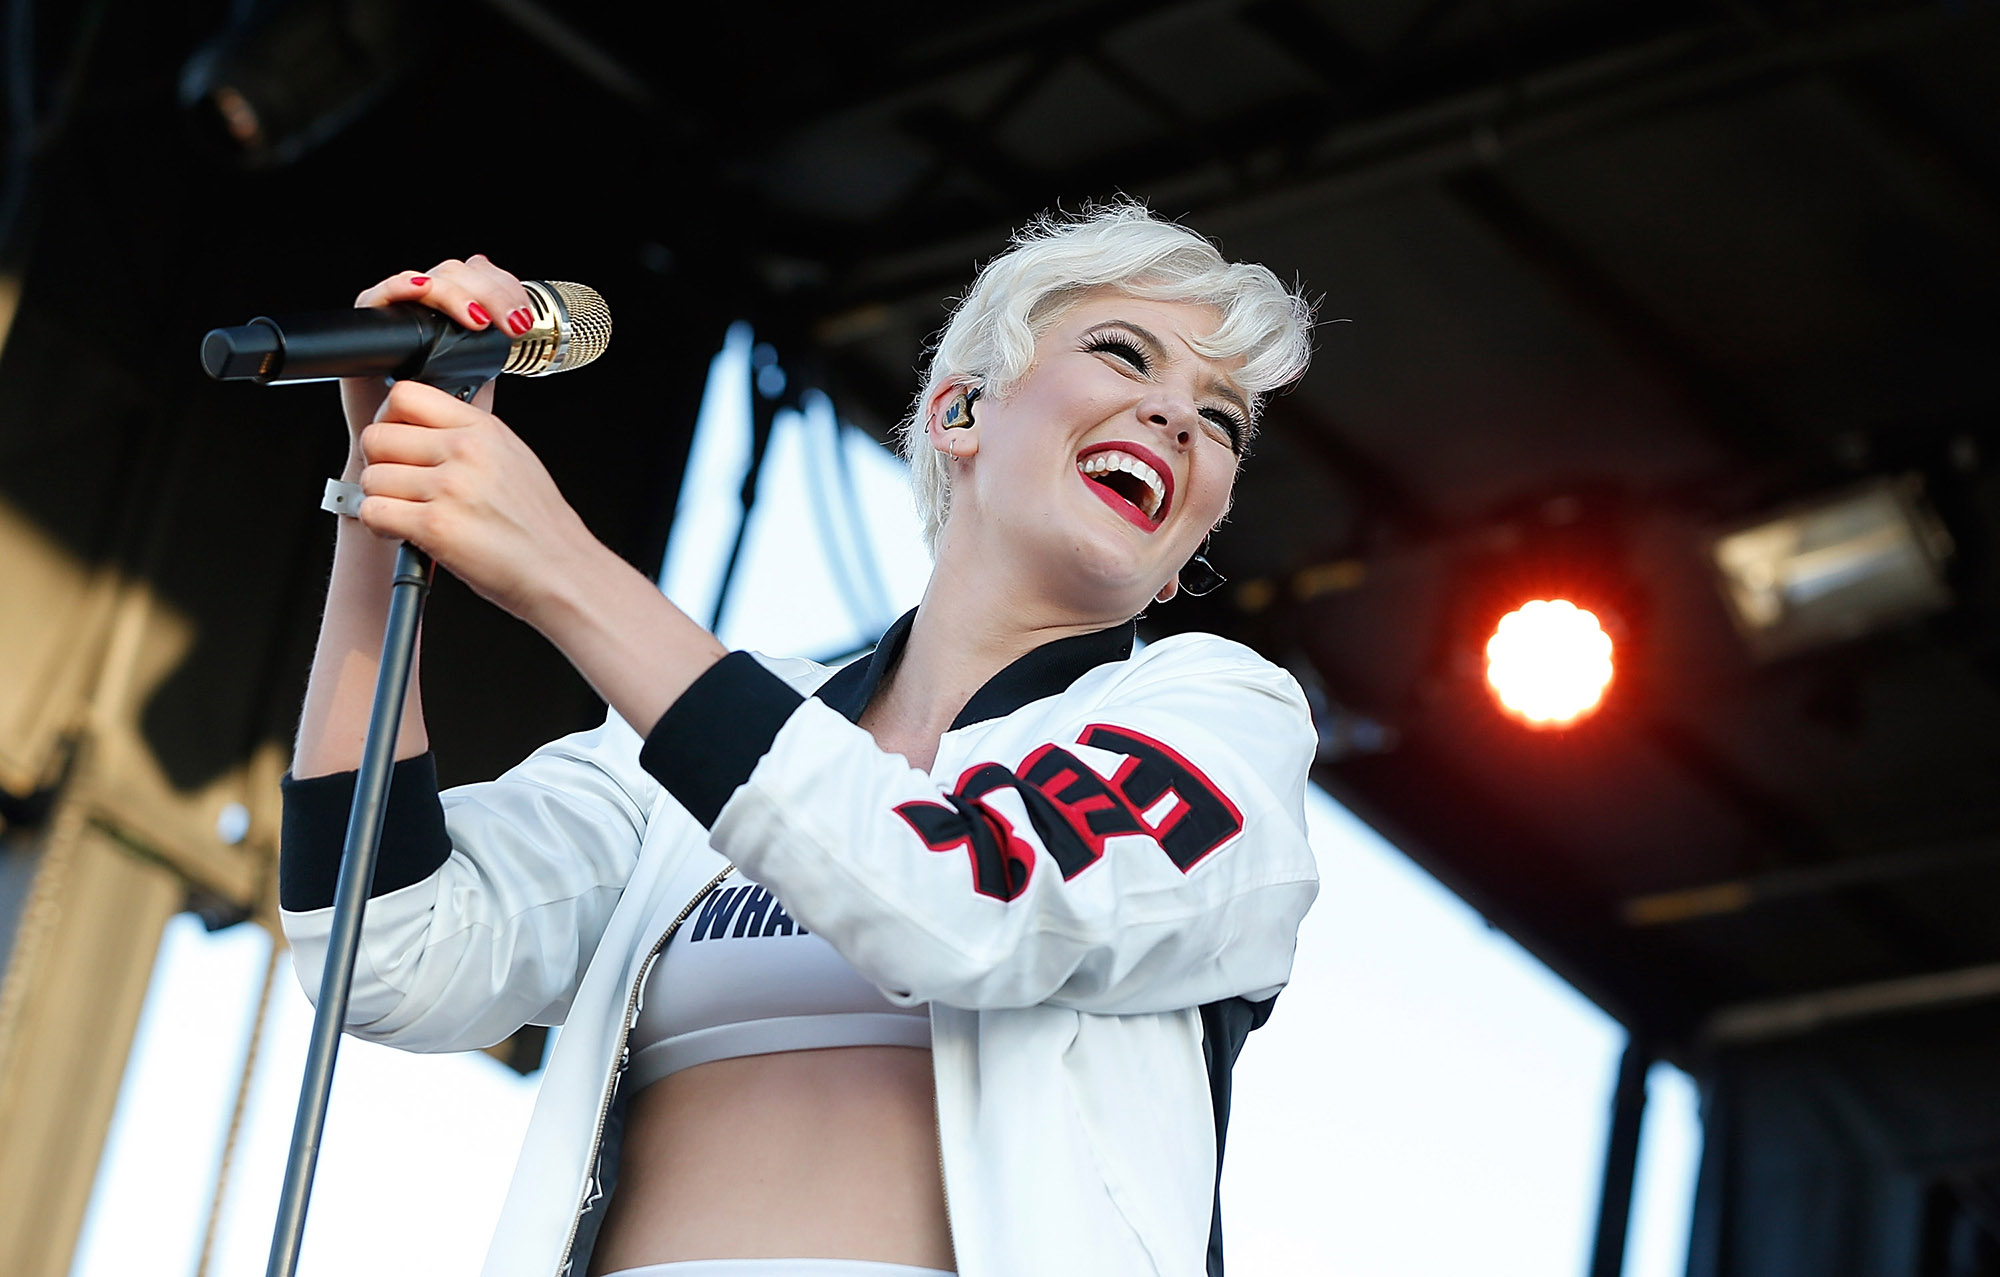 Betty Who performs at 2015 Billboard Hot 100 Music Festival (Photo by John Lamparski/WireImage)